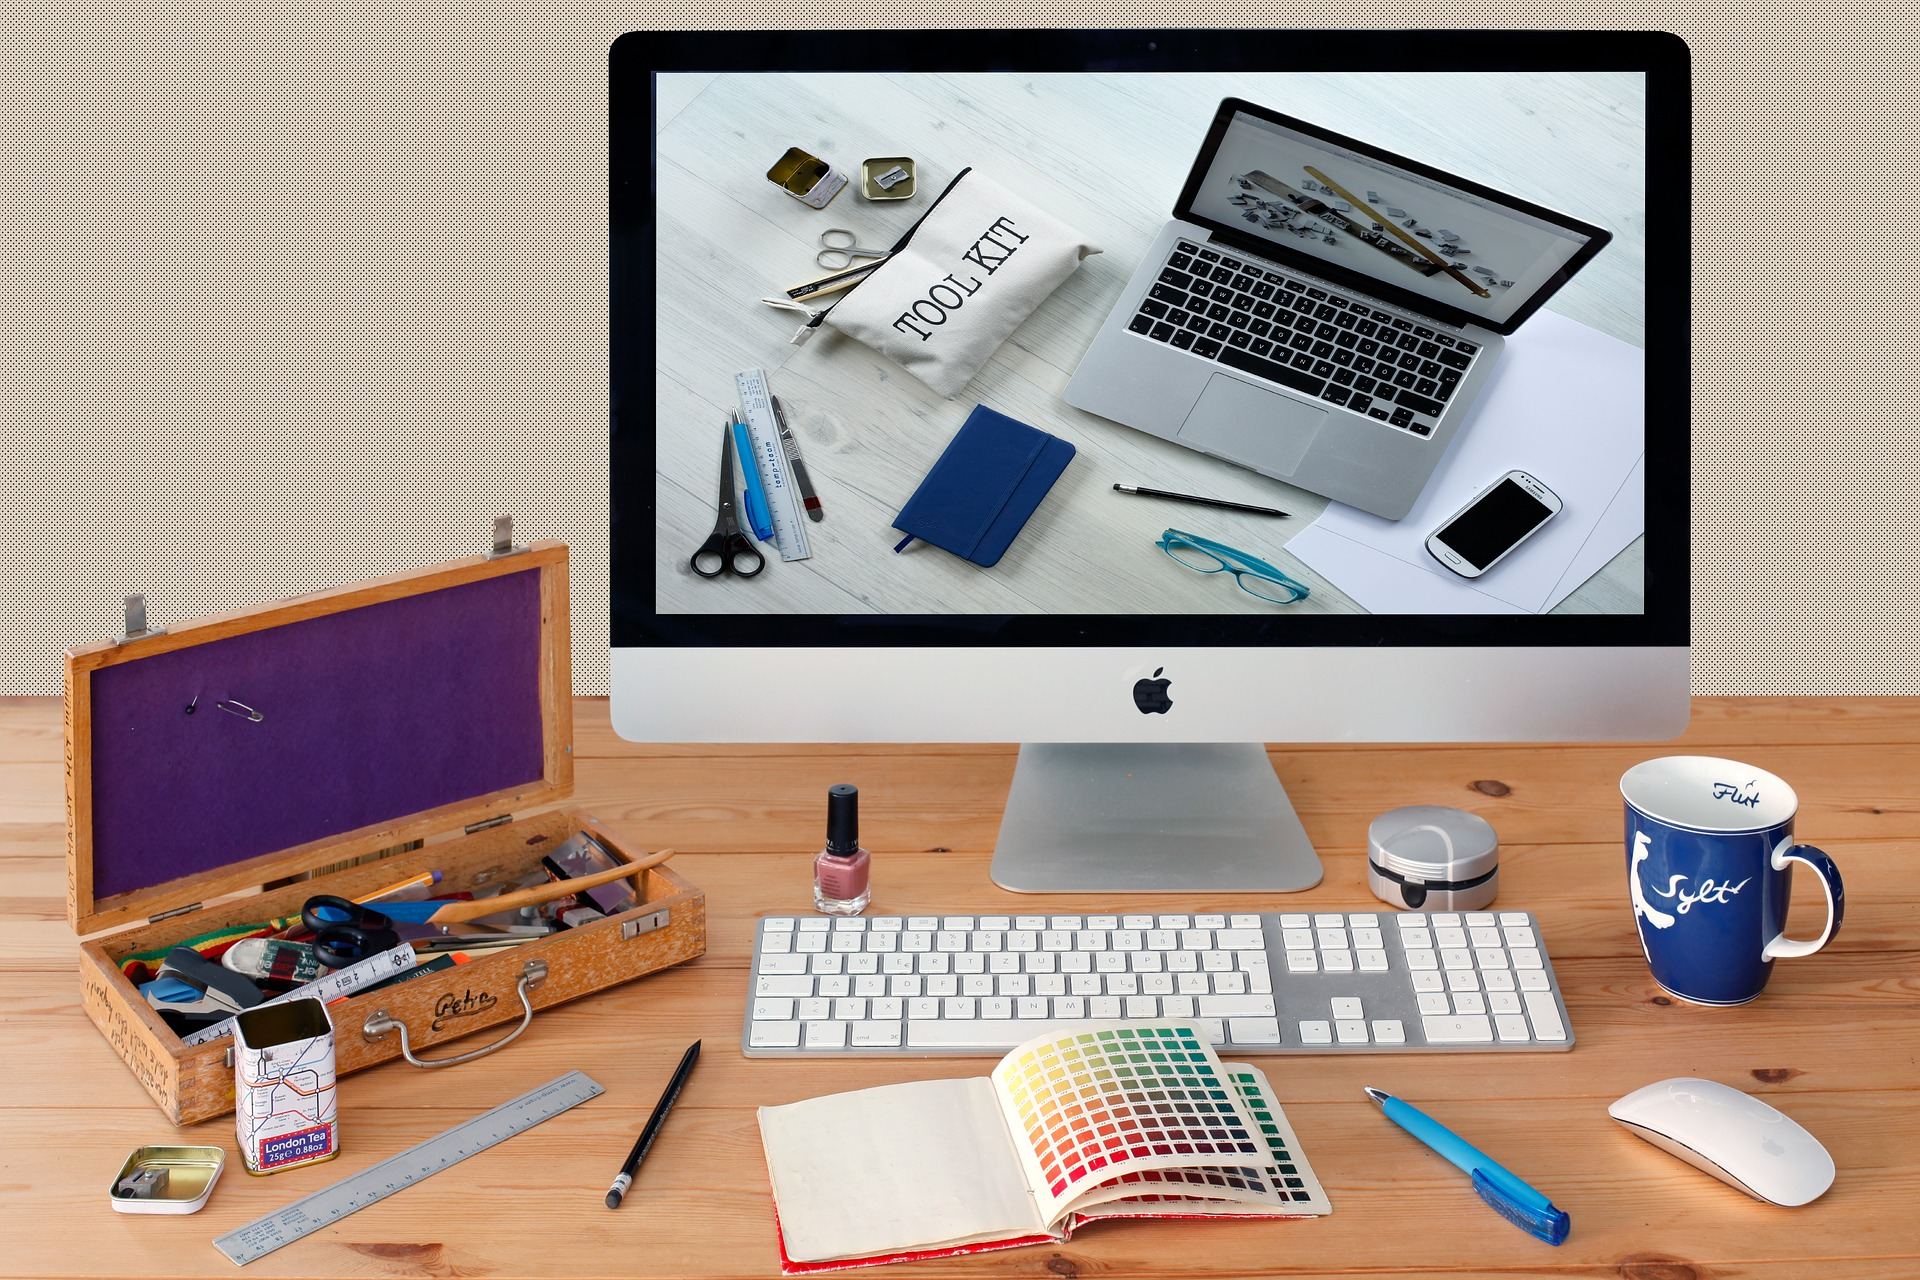 The publisher's toolset